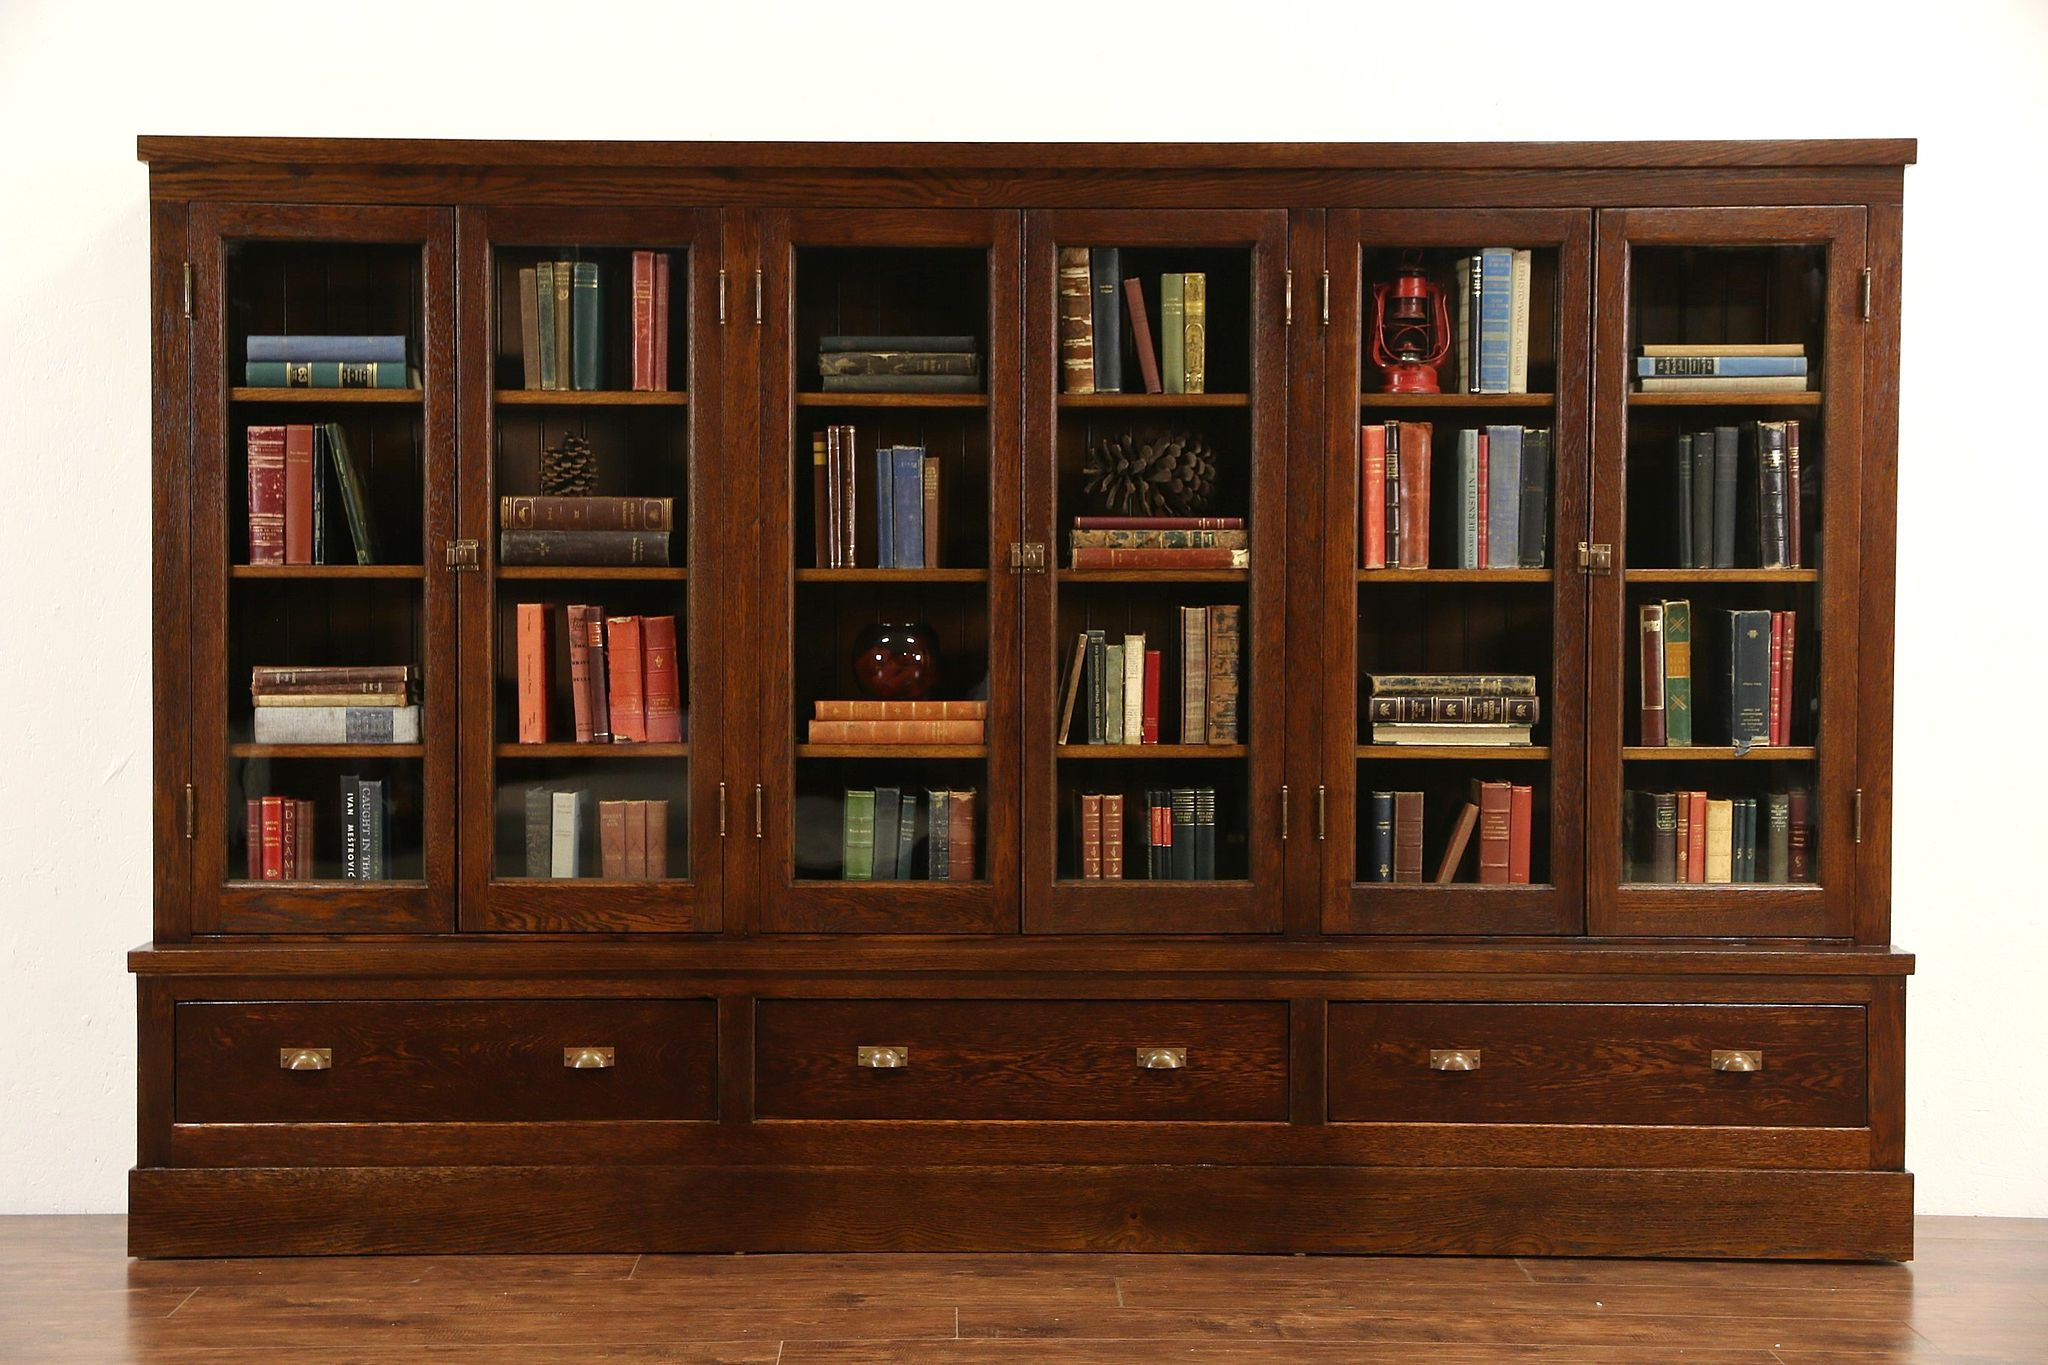 oak arts crafts 1900 antique bookcase pantry or display cabinet